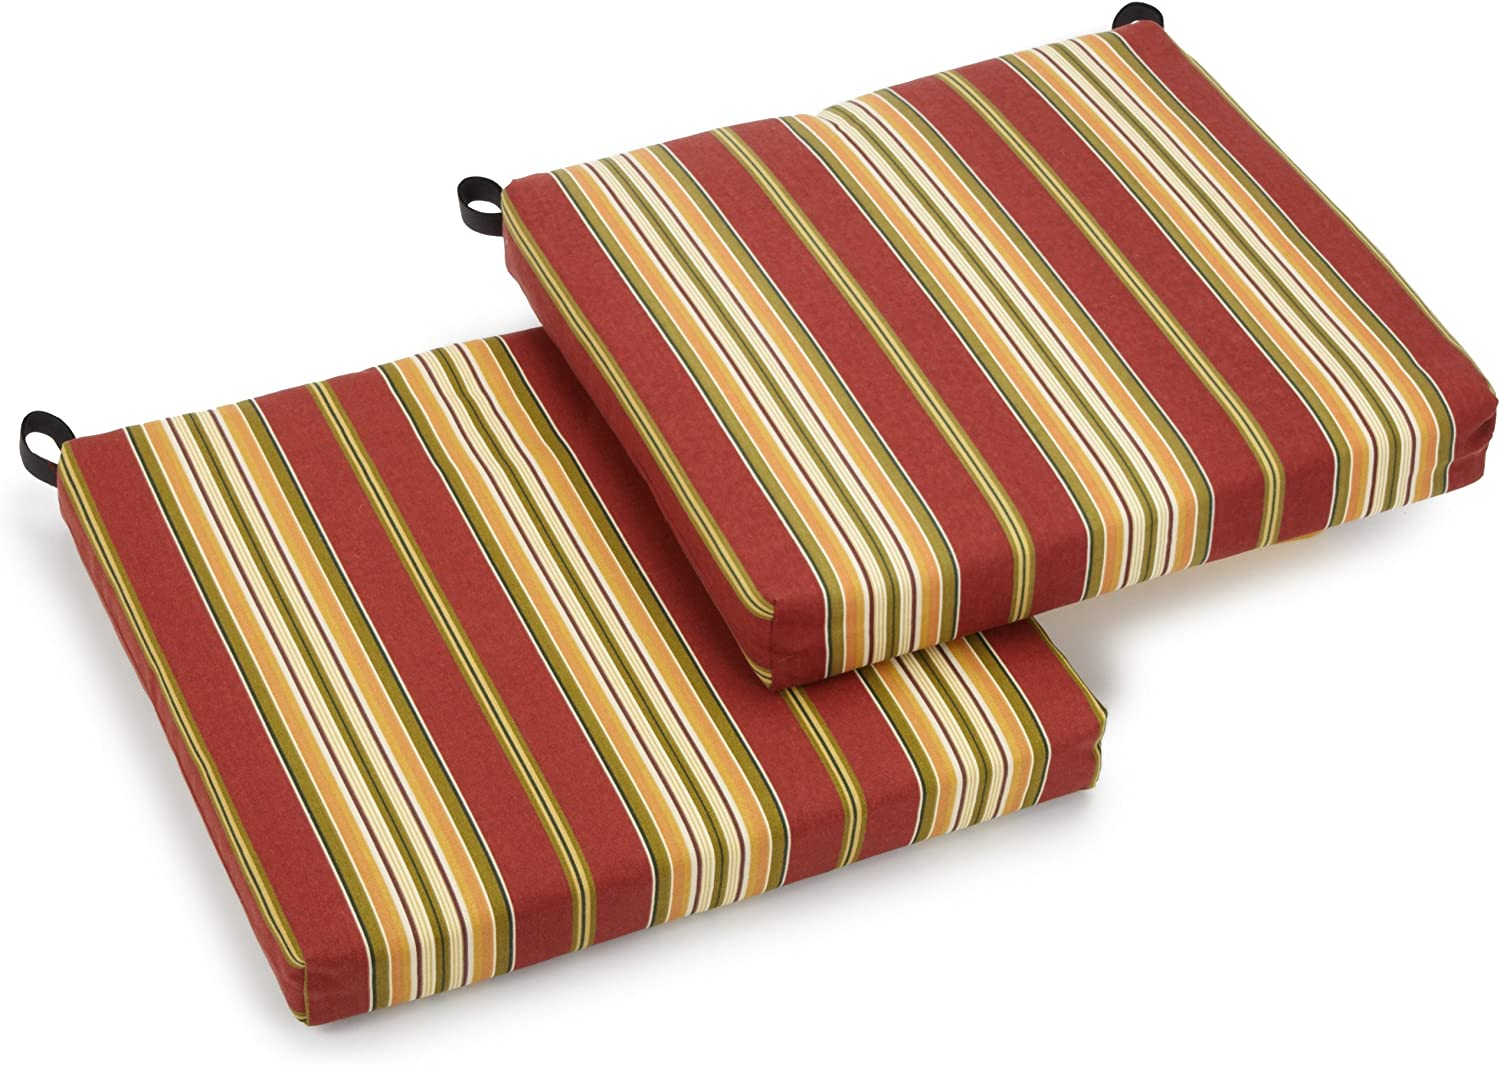 Blazing Needles Outdoor Spun Poly 19-Inch by 20-Inch by 3-1 2-Inch All Weather UV Resistant Zippered Cushions, Kingsley Stripe Ruby, Set of 2